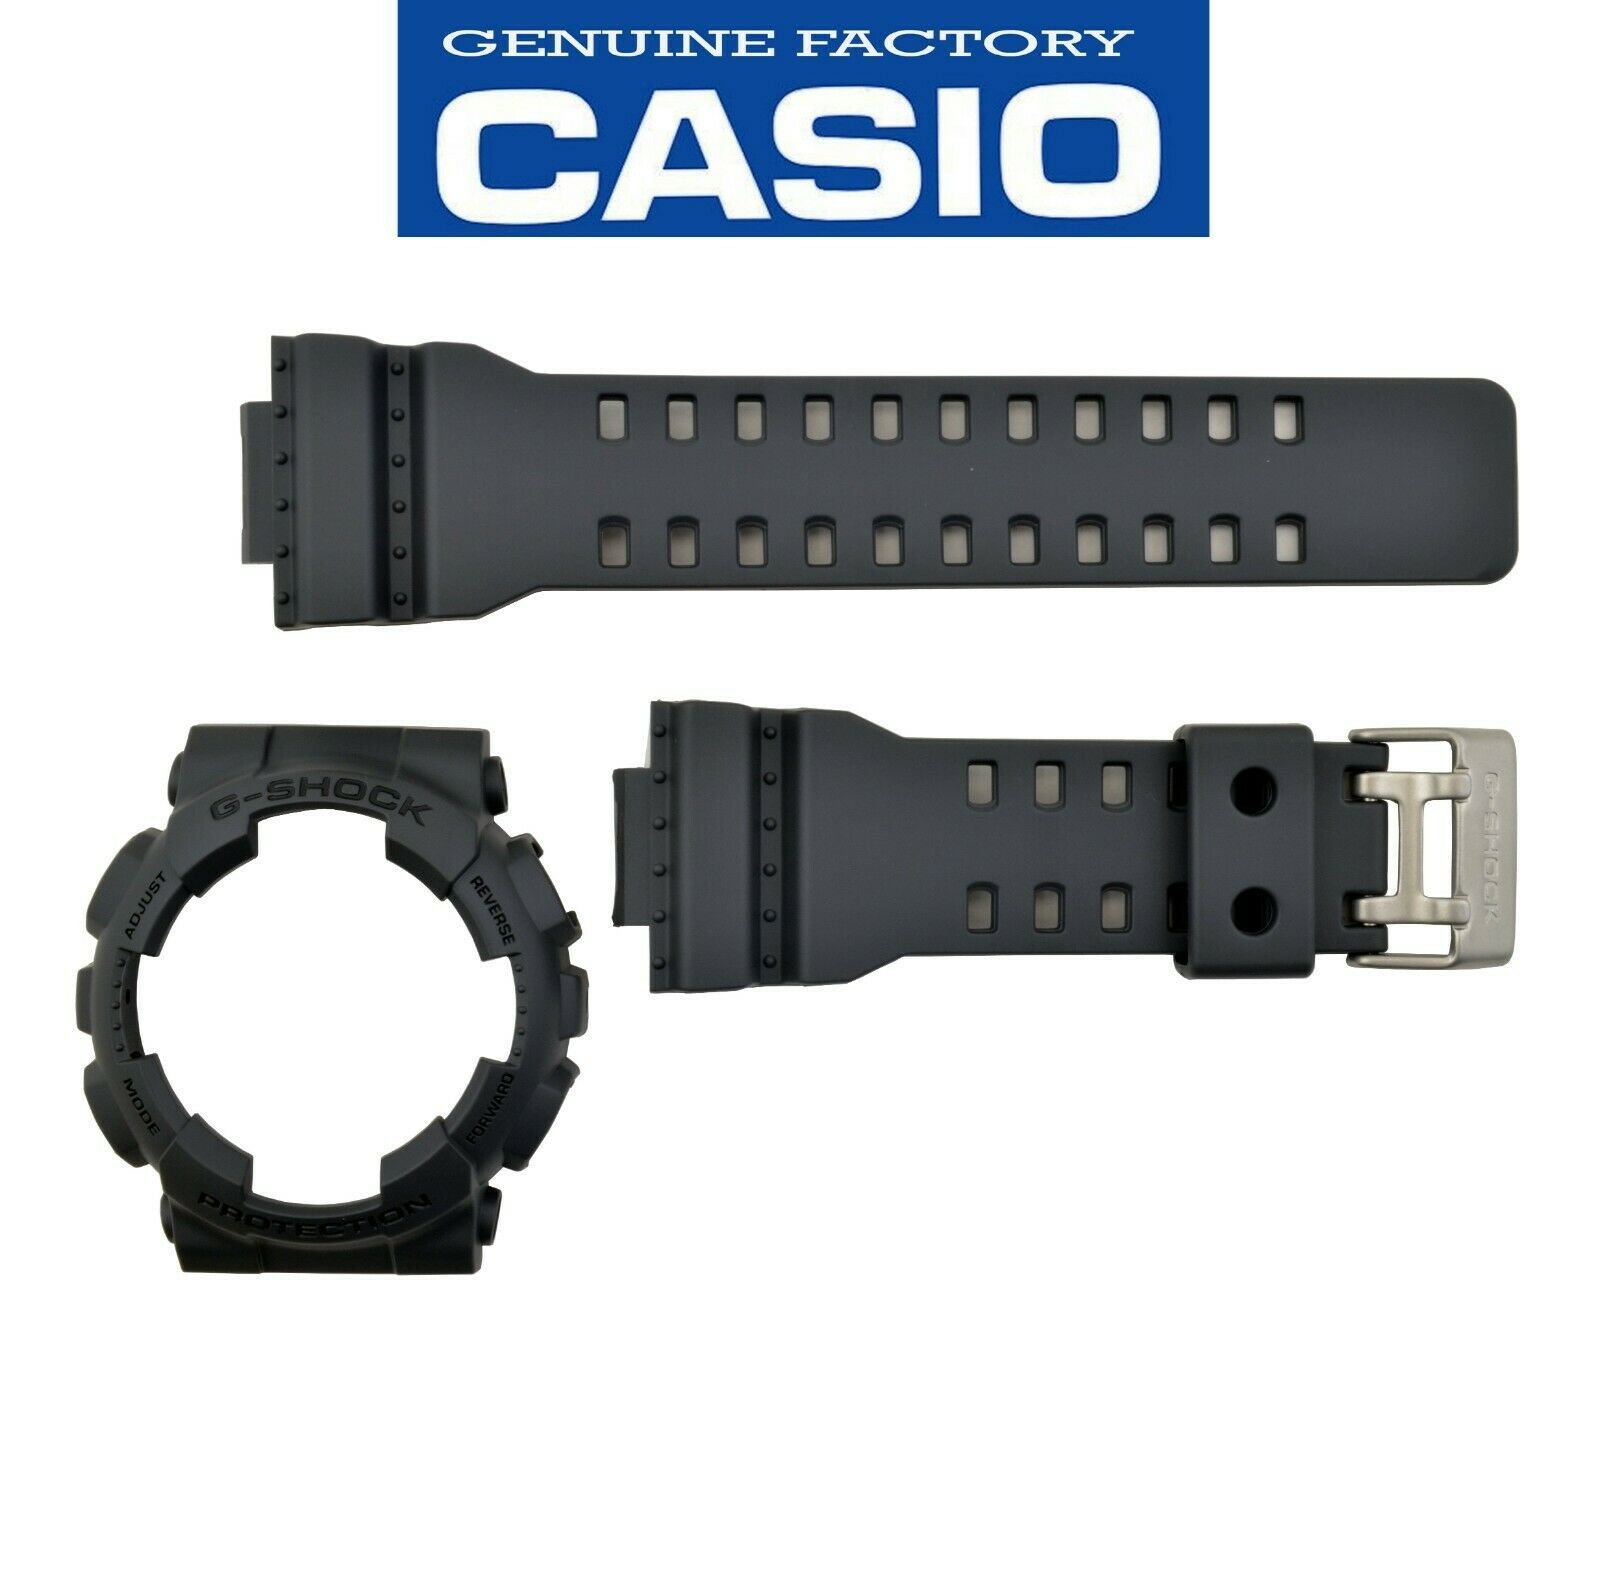 Primary image for Genuine Casio G-Shock Original GA100C-8A GA110TS-1A4 Watch band & Bezel Set